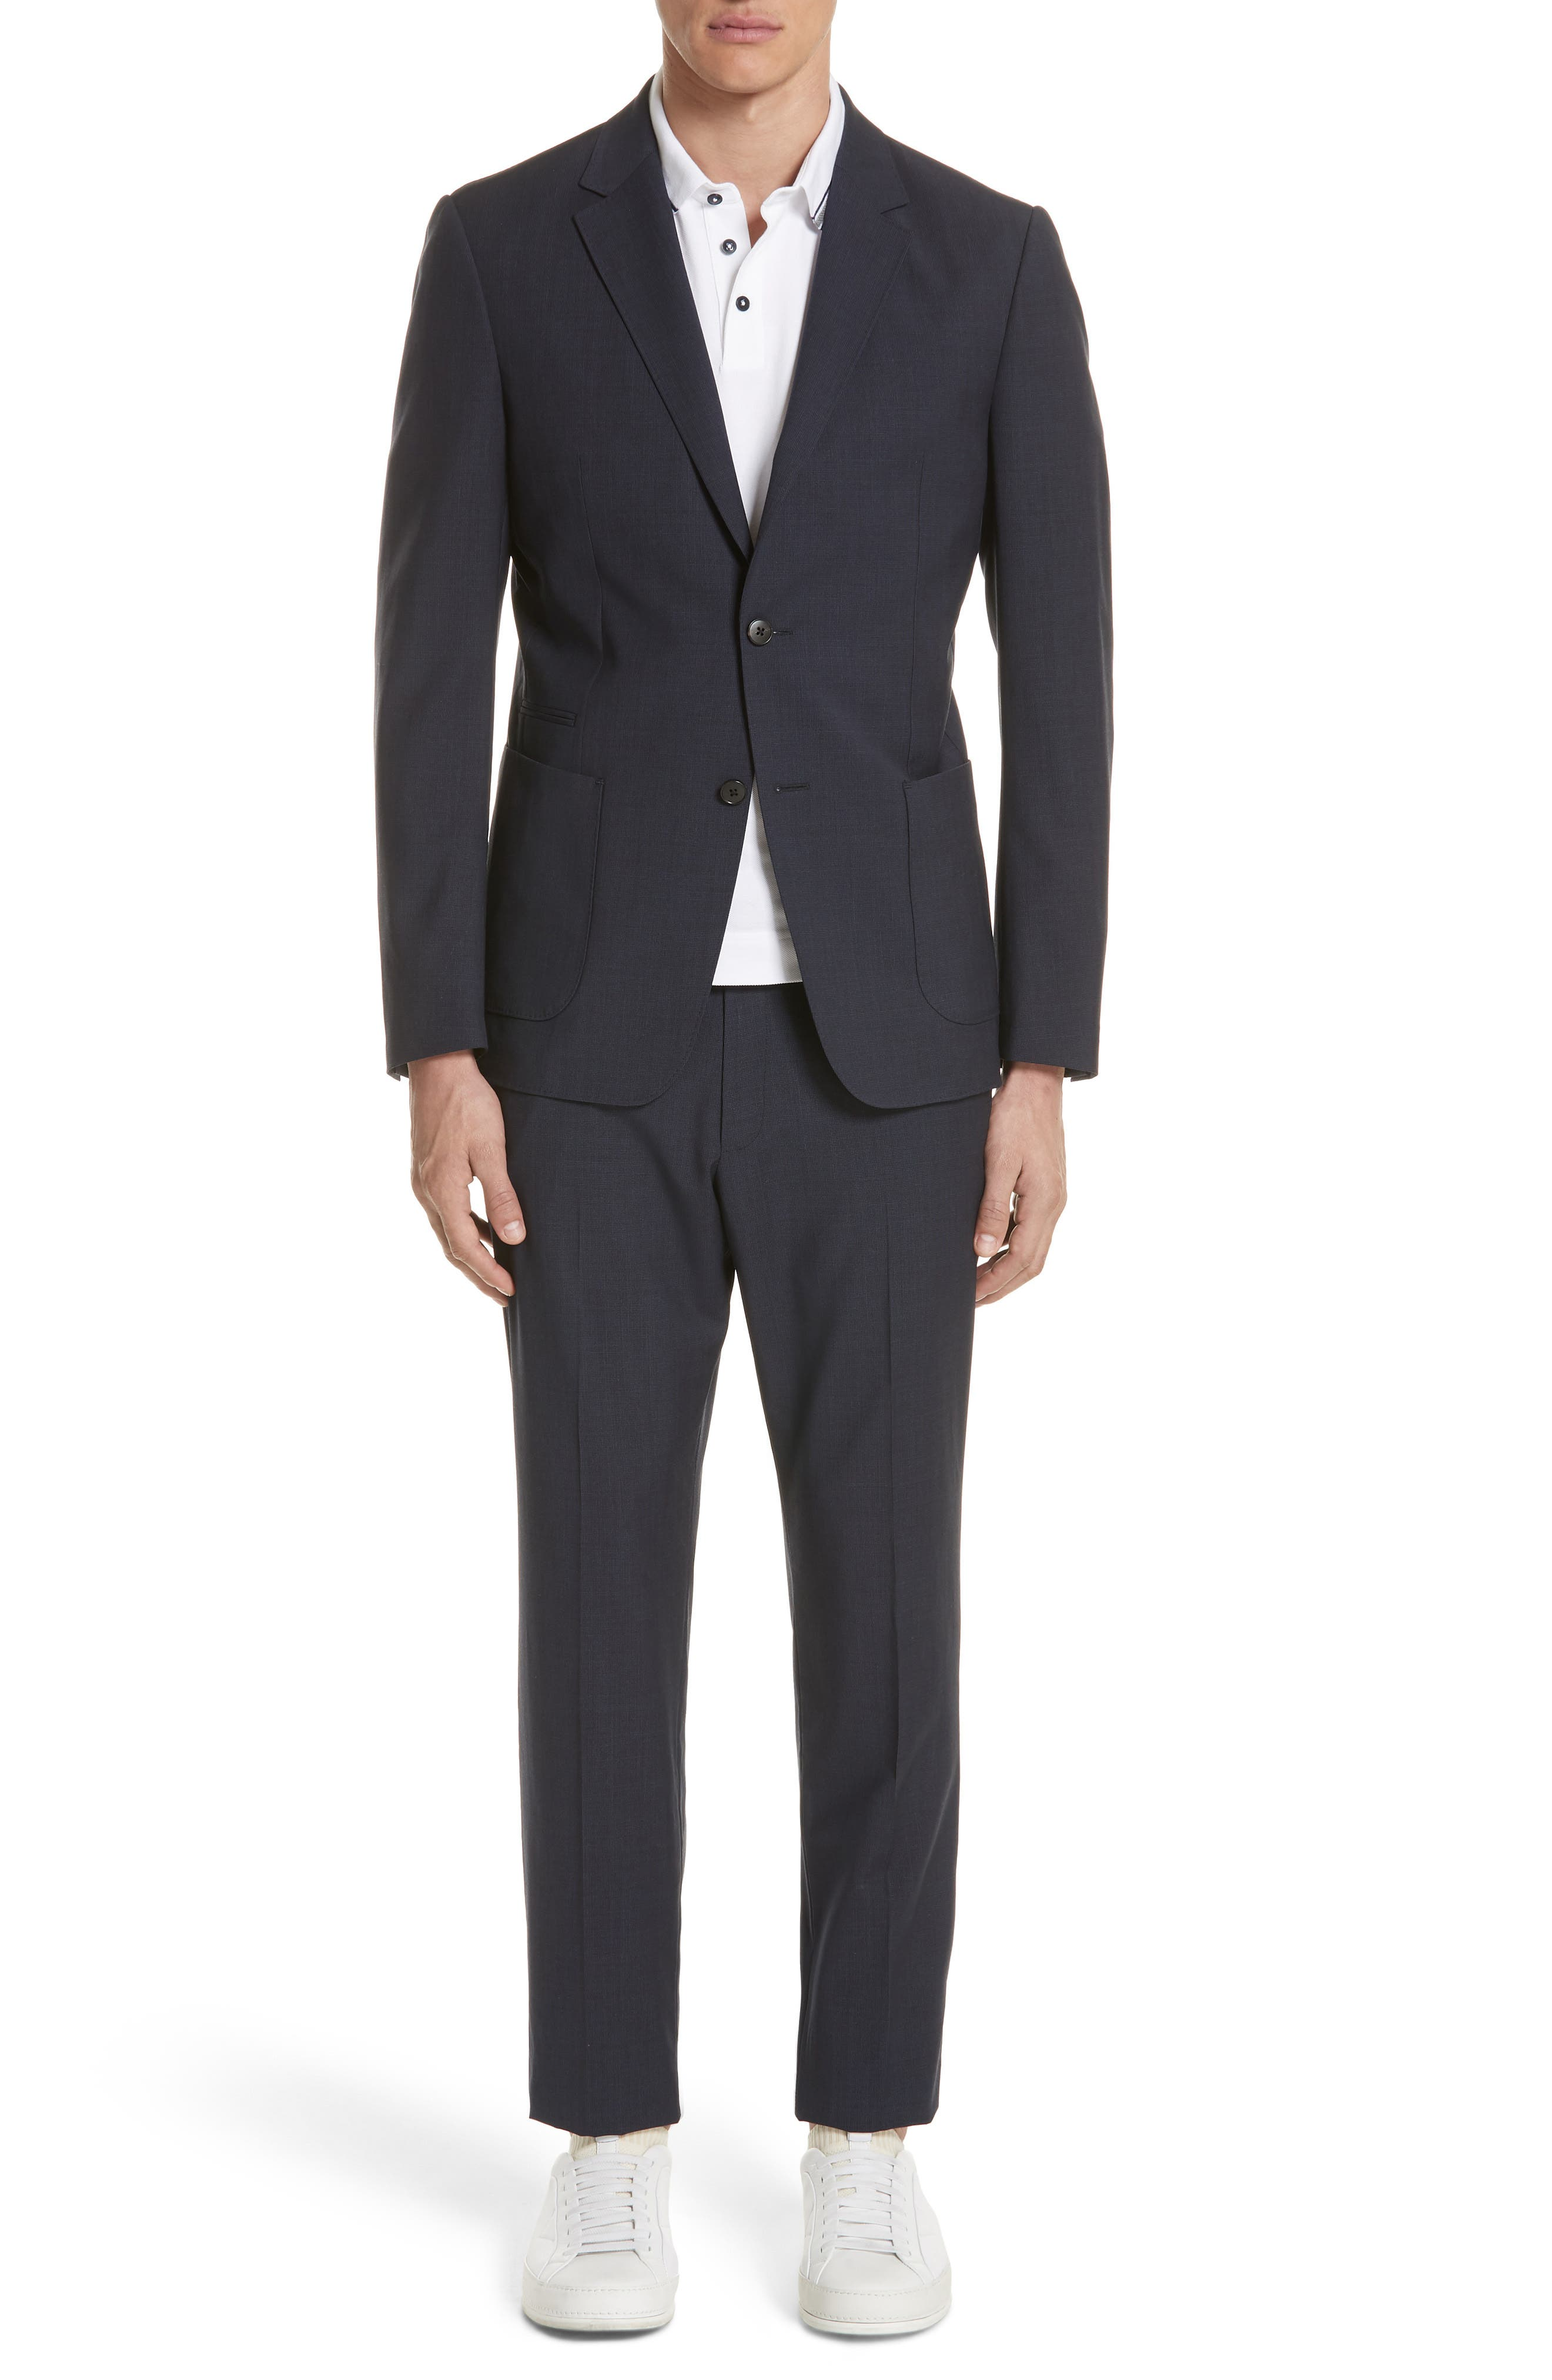 TECHMERINO<sup>™</sup> Wash & Go Trim Fit Solid Wool Suit,                             Main thumbnail 1, color,                             412